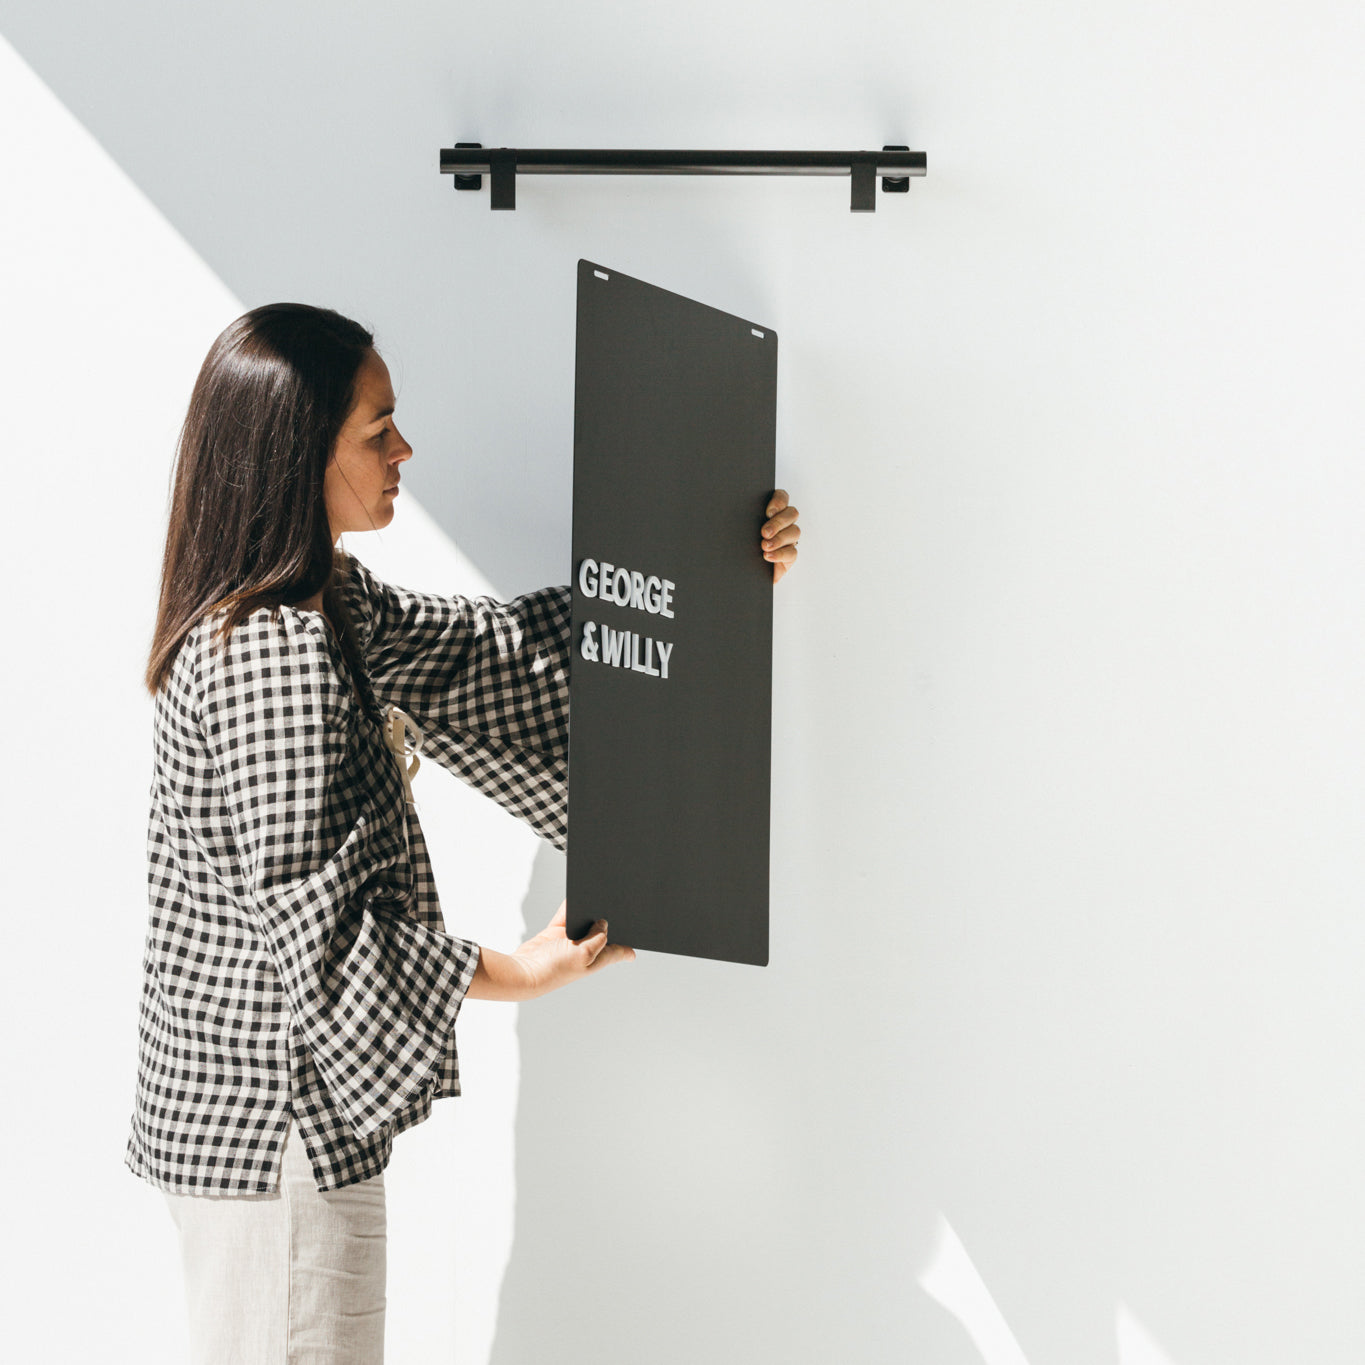 The Hanging Menu Board - can be flipped around to display multiple menus